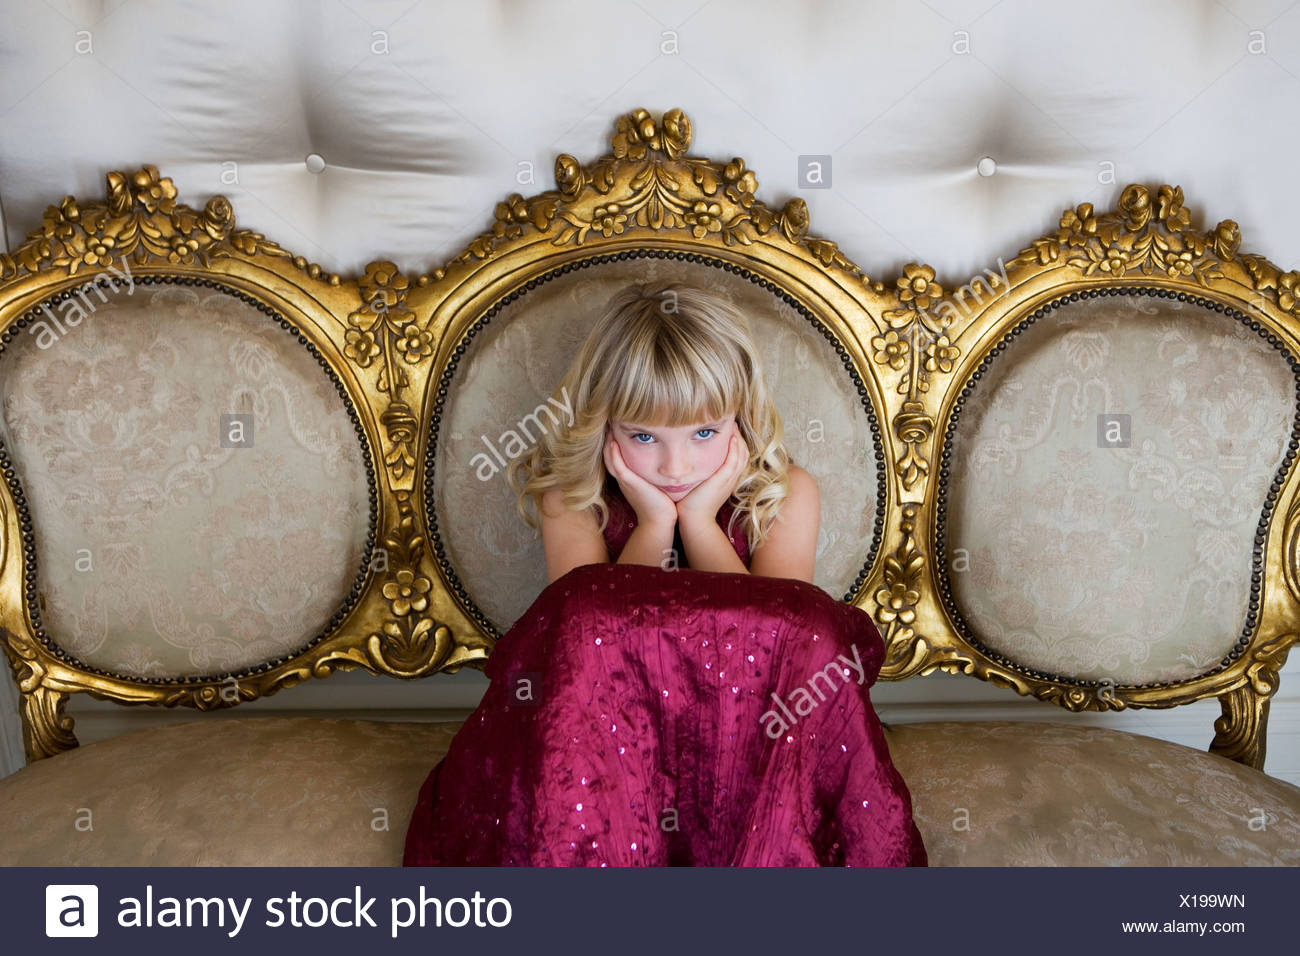 Young girl in a party dress sulking - Stock Image